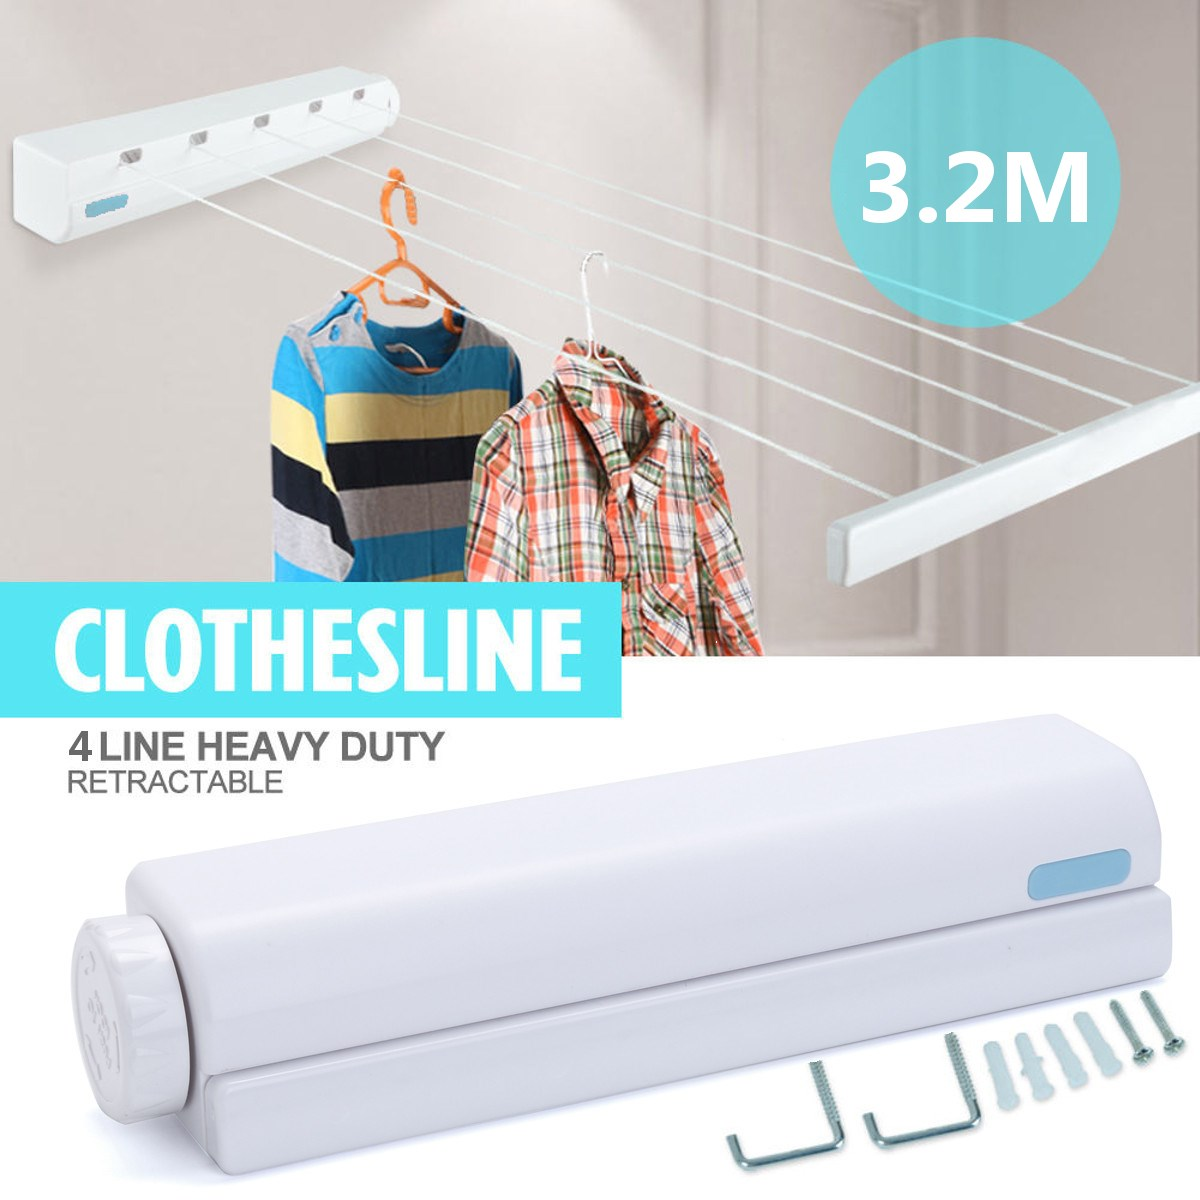 3.2m ABS Clothesline 4 Lines Rope Auto Roll Up Washing Indoor Space Saving Retractable  Clothesline Indoor Outdoor Clothes Dryer In Clotheslines From Home ...